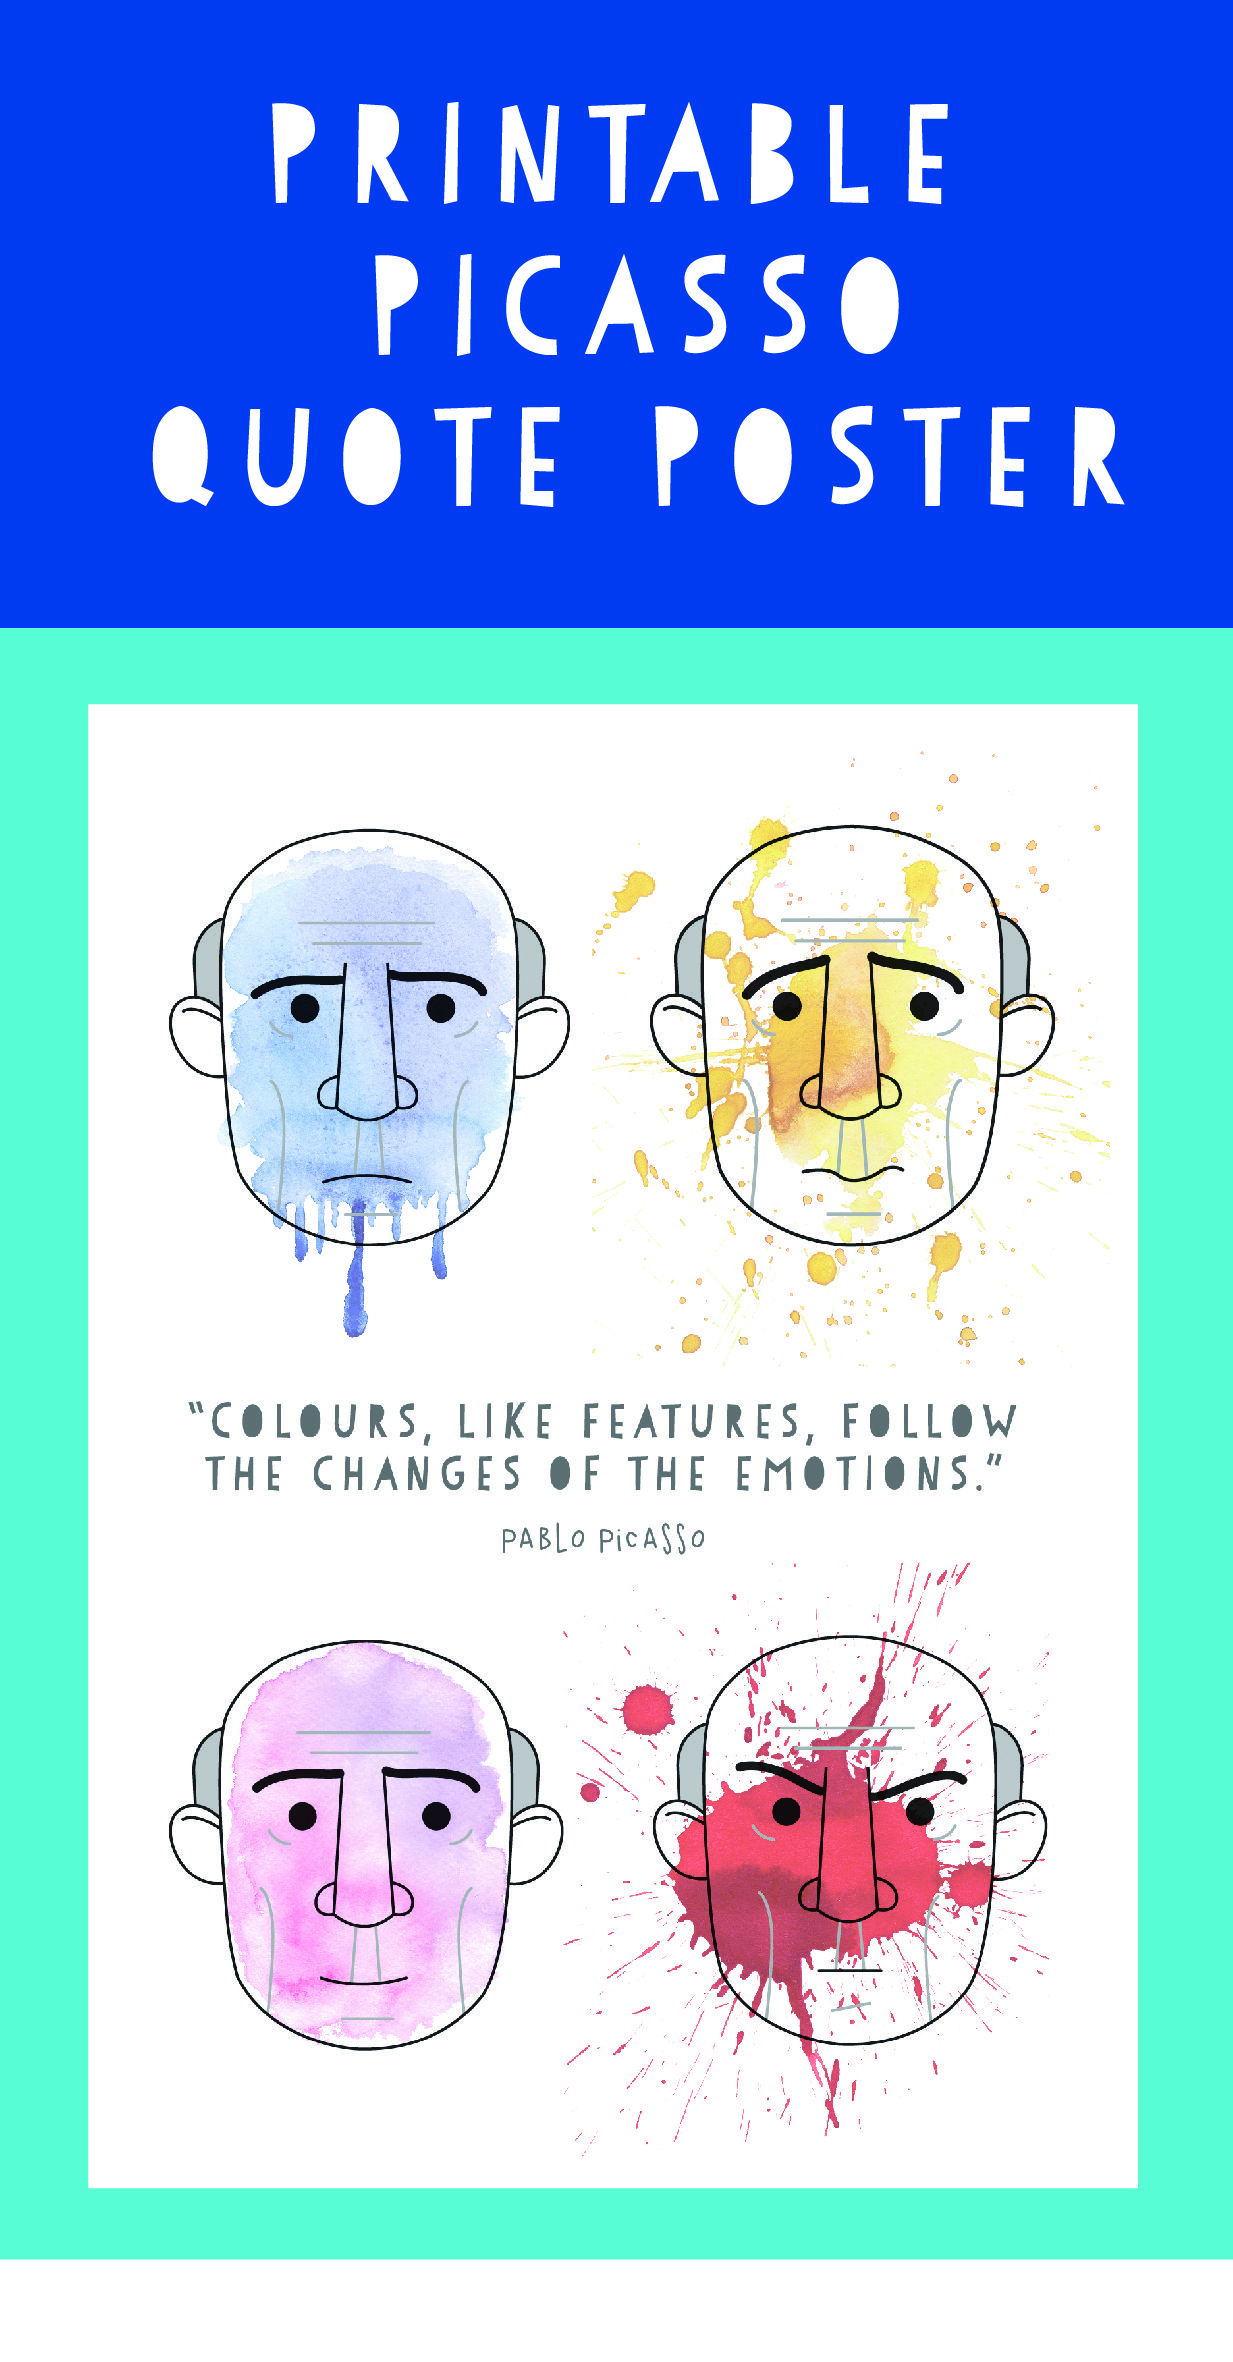 Printable Poster Illustrating The Pablo Picasso Quote